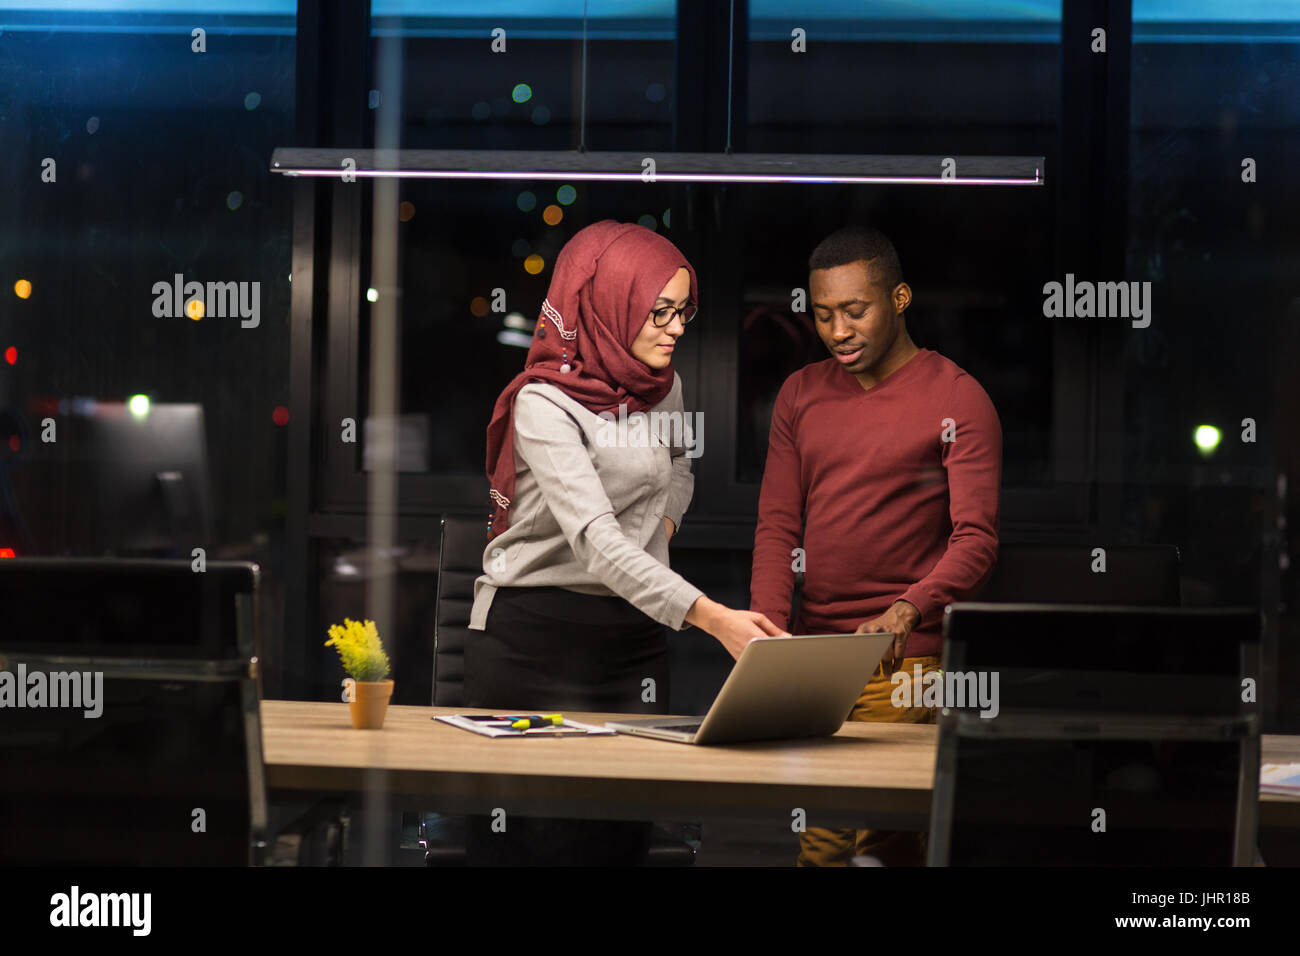 Arab woman and African man collaborating in the office working overtime. - Stock Image